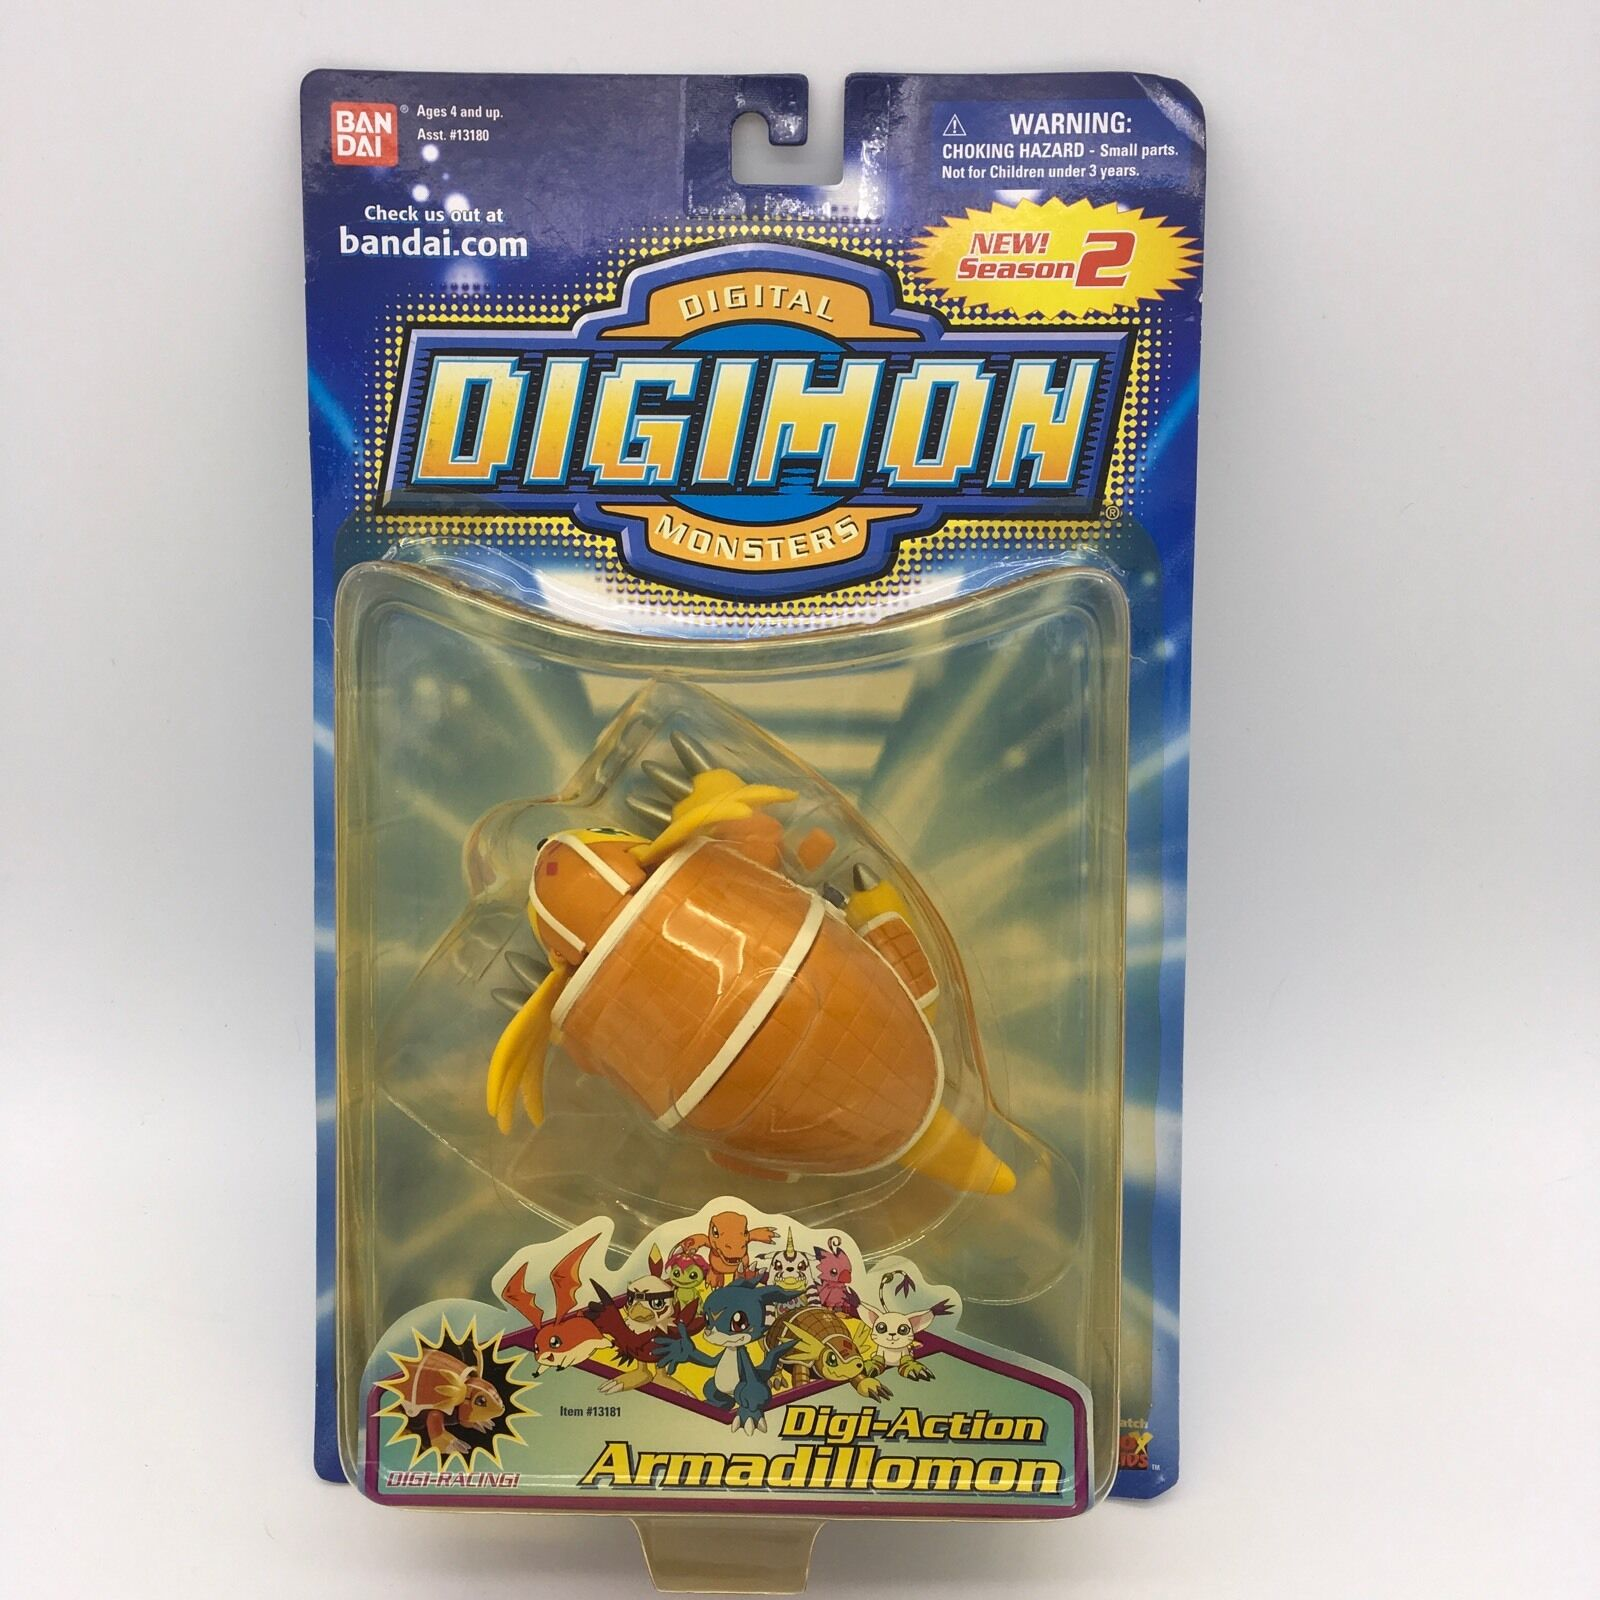 Digimon Armadillomon Digi Action Season 2  13181 Bandai 2000 New